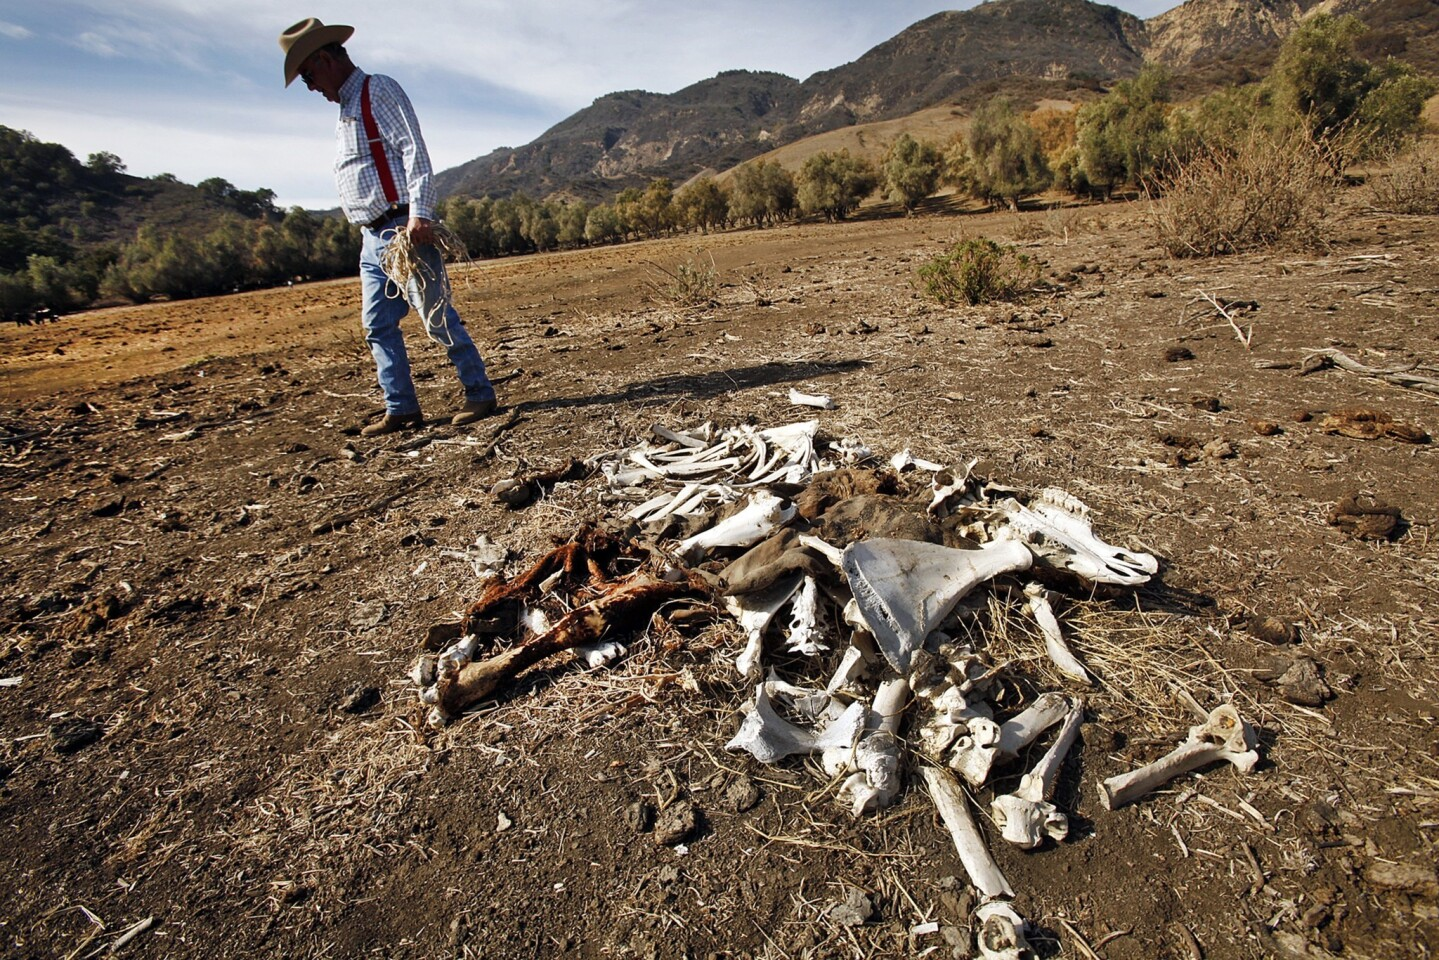 Cattle rancher Rob Frost stands by the remains of one of this cattle that died on grazing land near Santa Paula. Frost says that in an ordinary year he will lose 1% of his cattle to natural causes but that he is now losing near 10%. There is no natural grass for his cattle to eat.